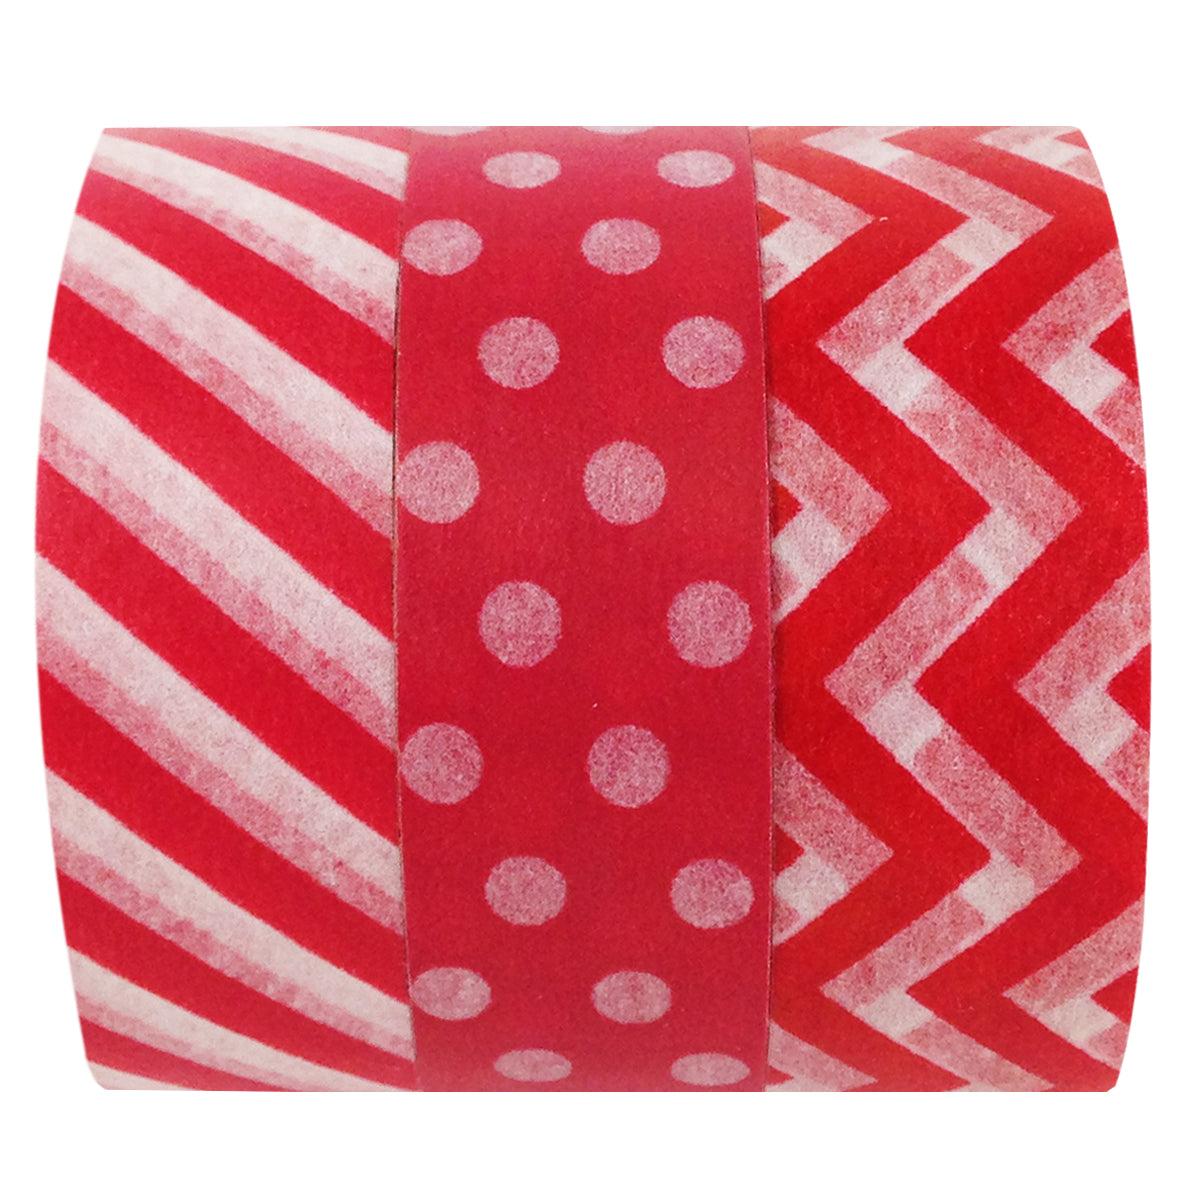 Wrapables Ravishing Red Japanese Washi Masking Tape (set of 3)